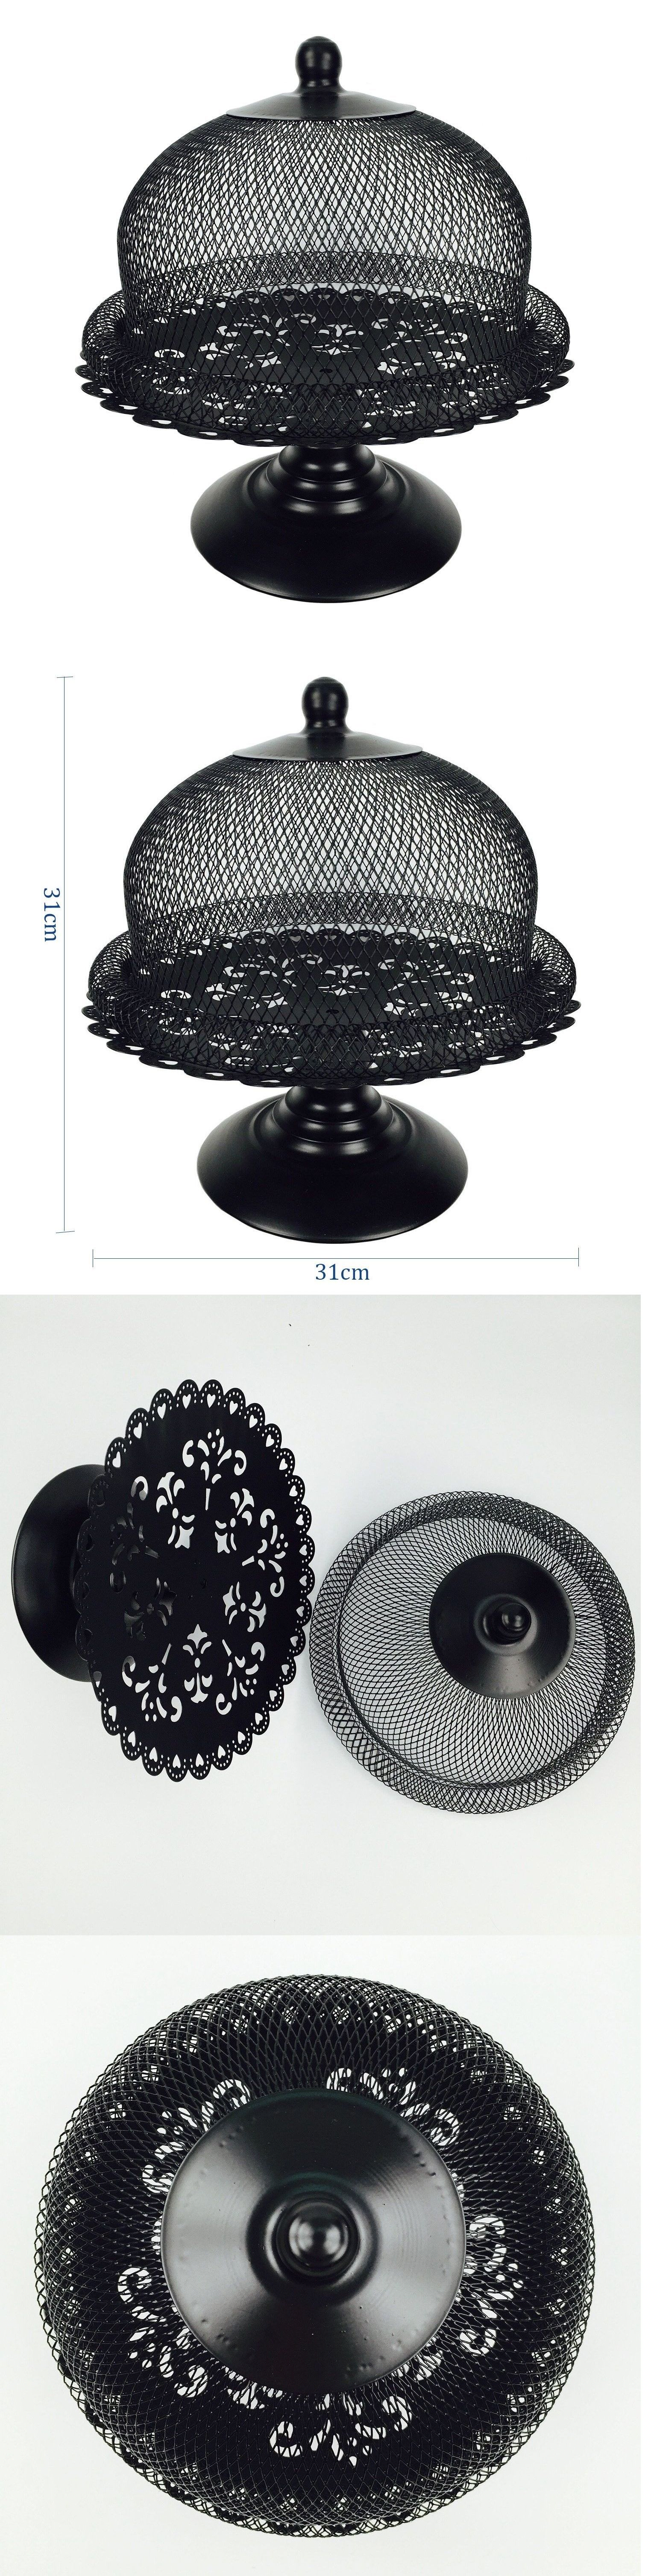 Cake stands 177010 black cake stand and dome lid metal